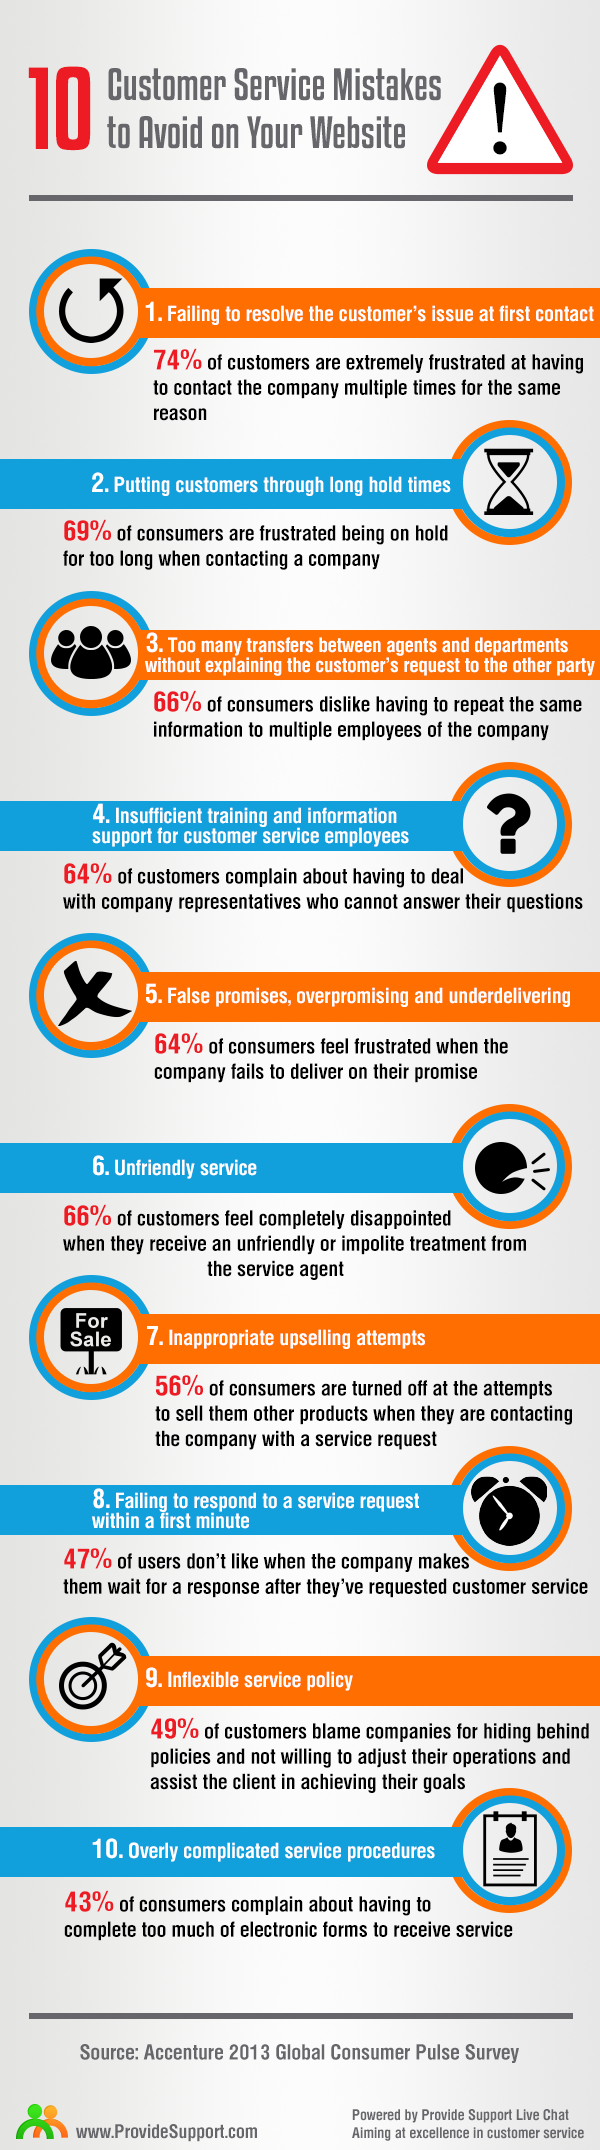 Ten customer service mistakes to avoid on your website